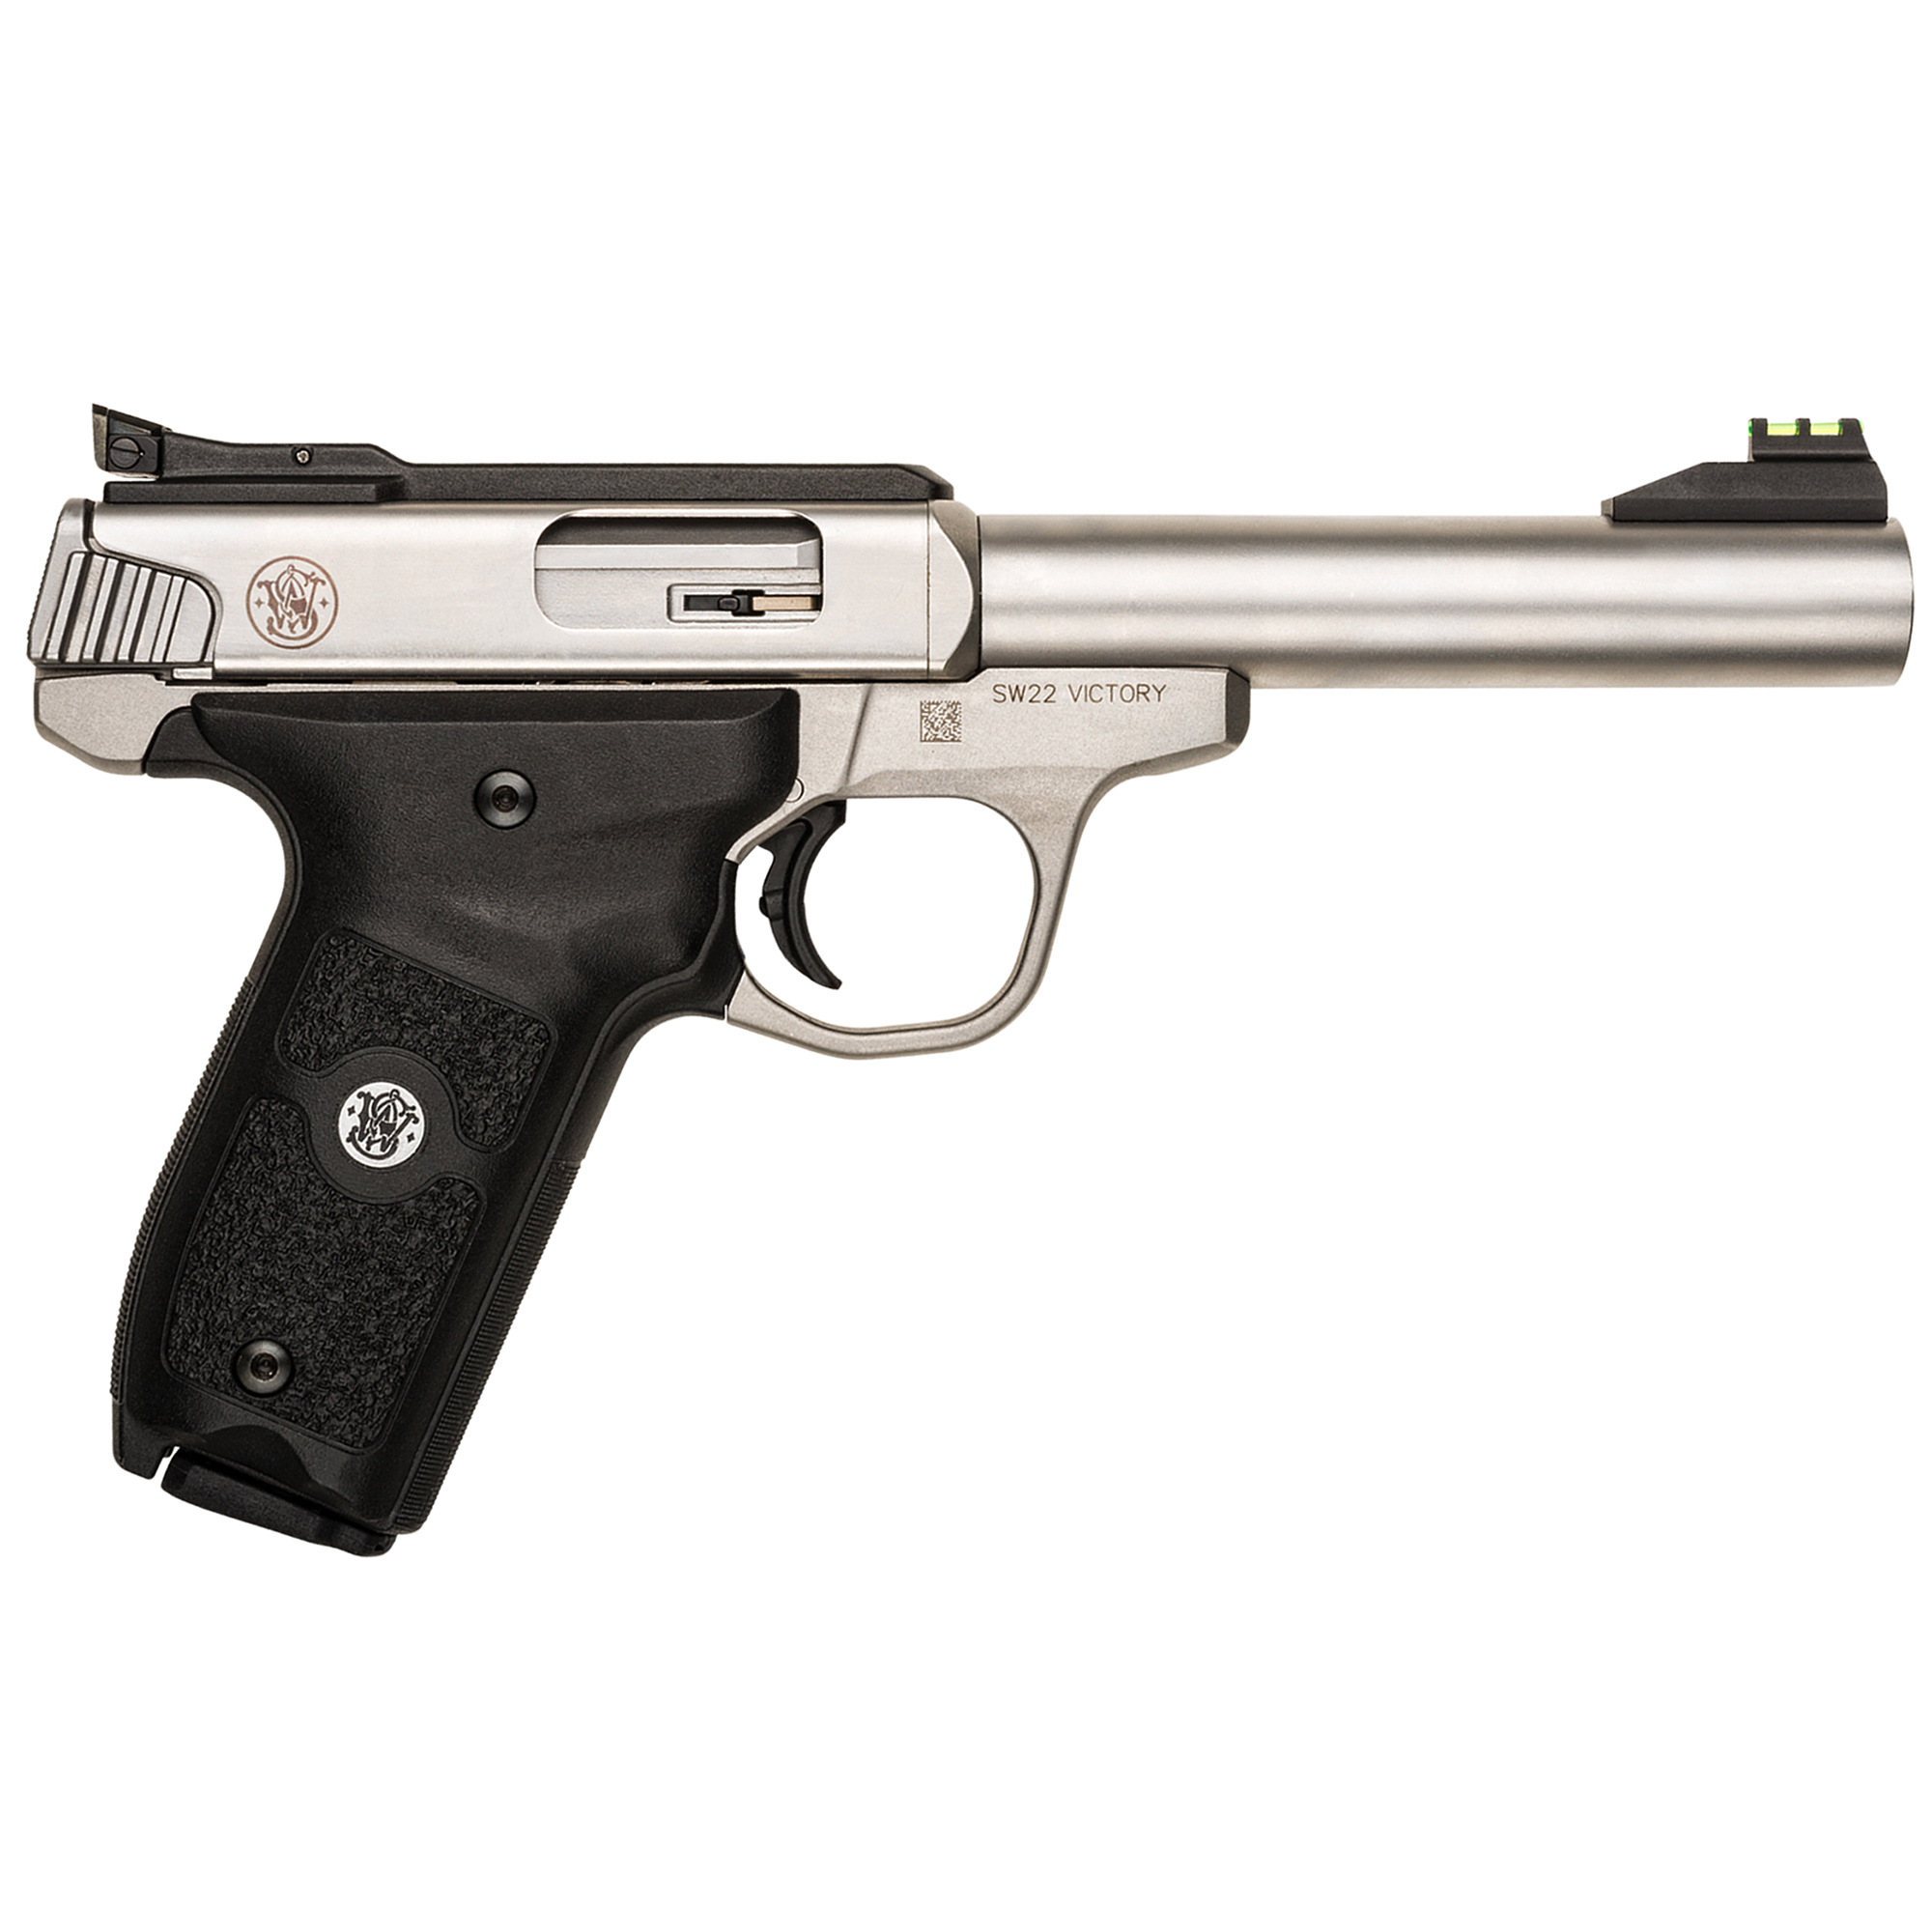 Smith & Wesson SW22 Victory Handgun